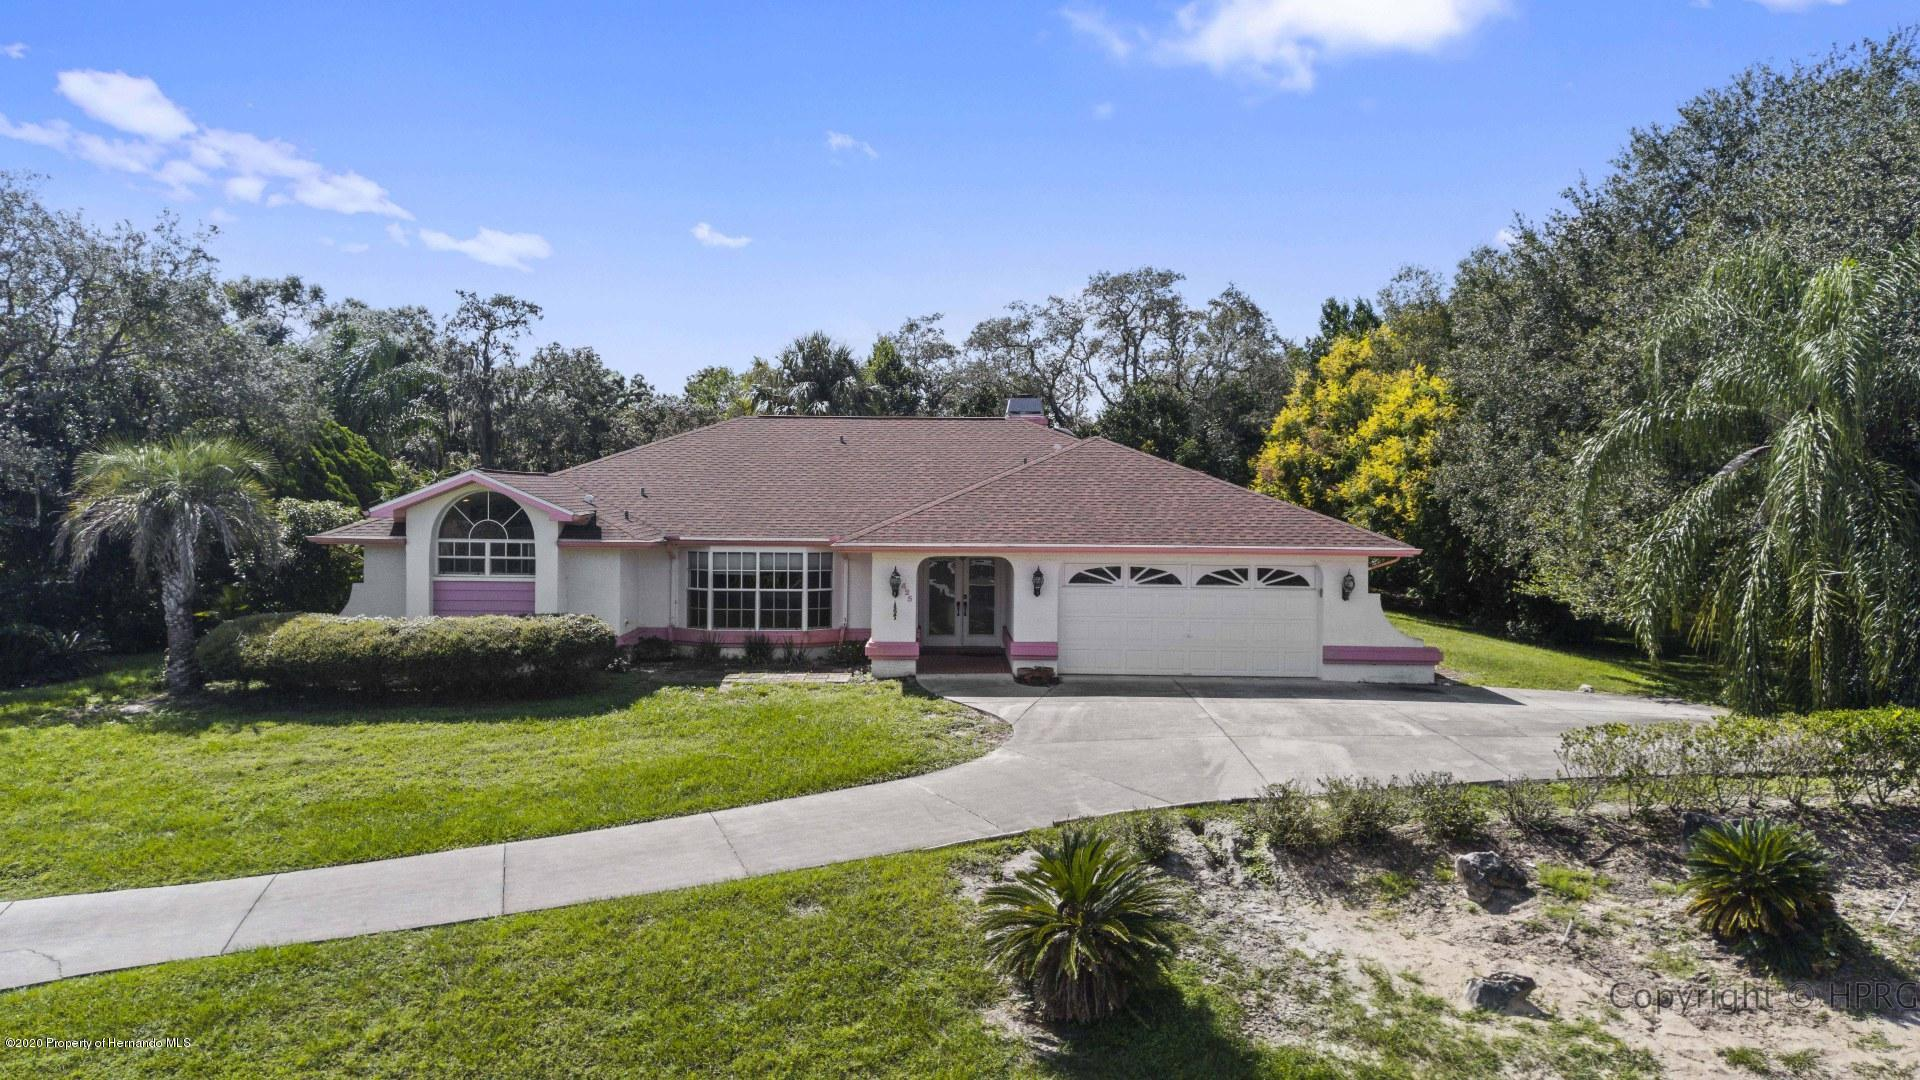 Details for 425 Florian Way, Spring Hill, FL 34609